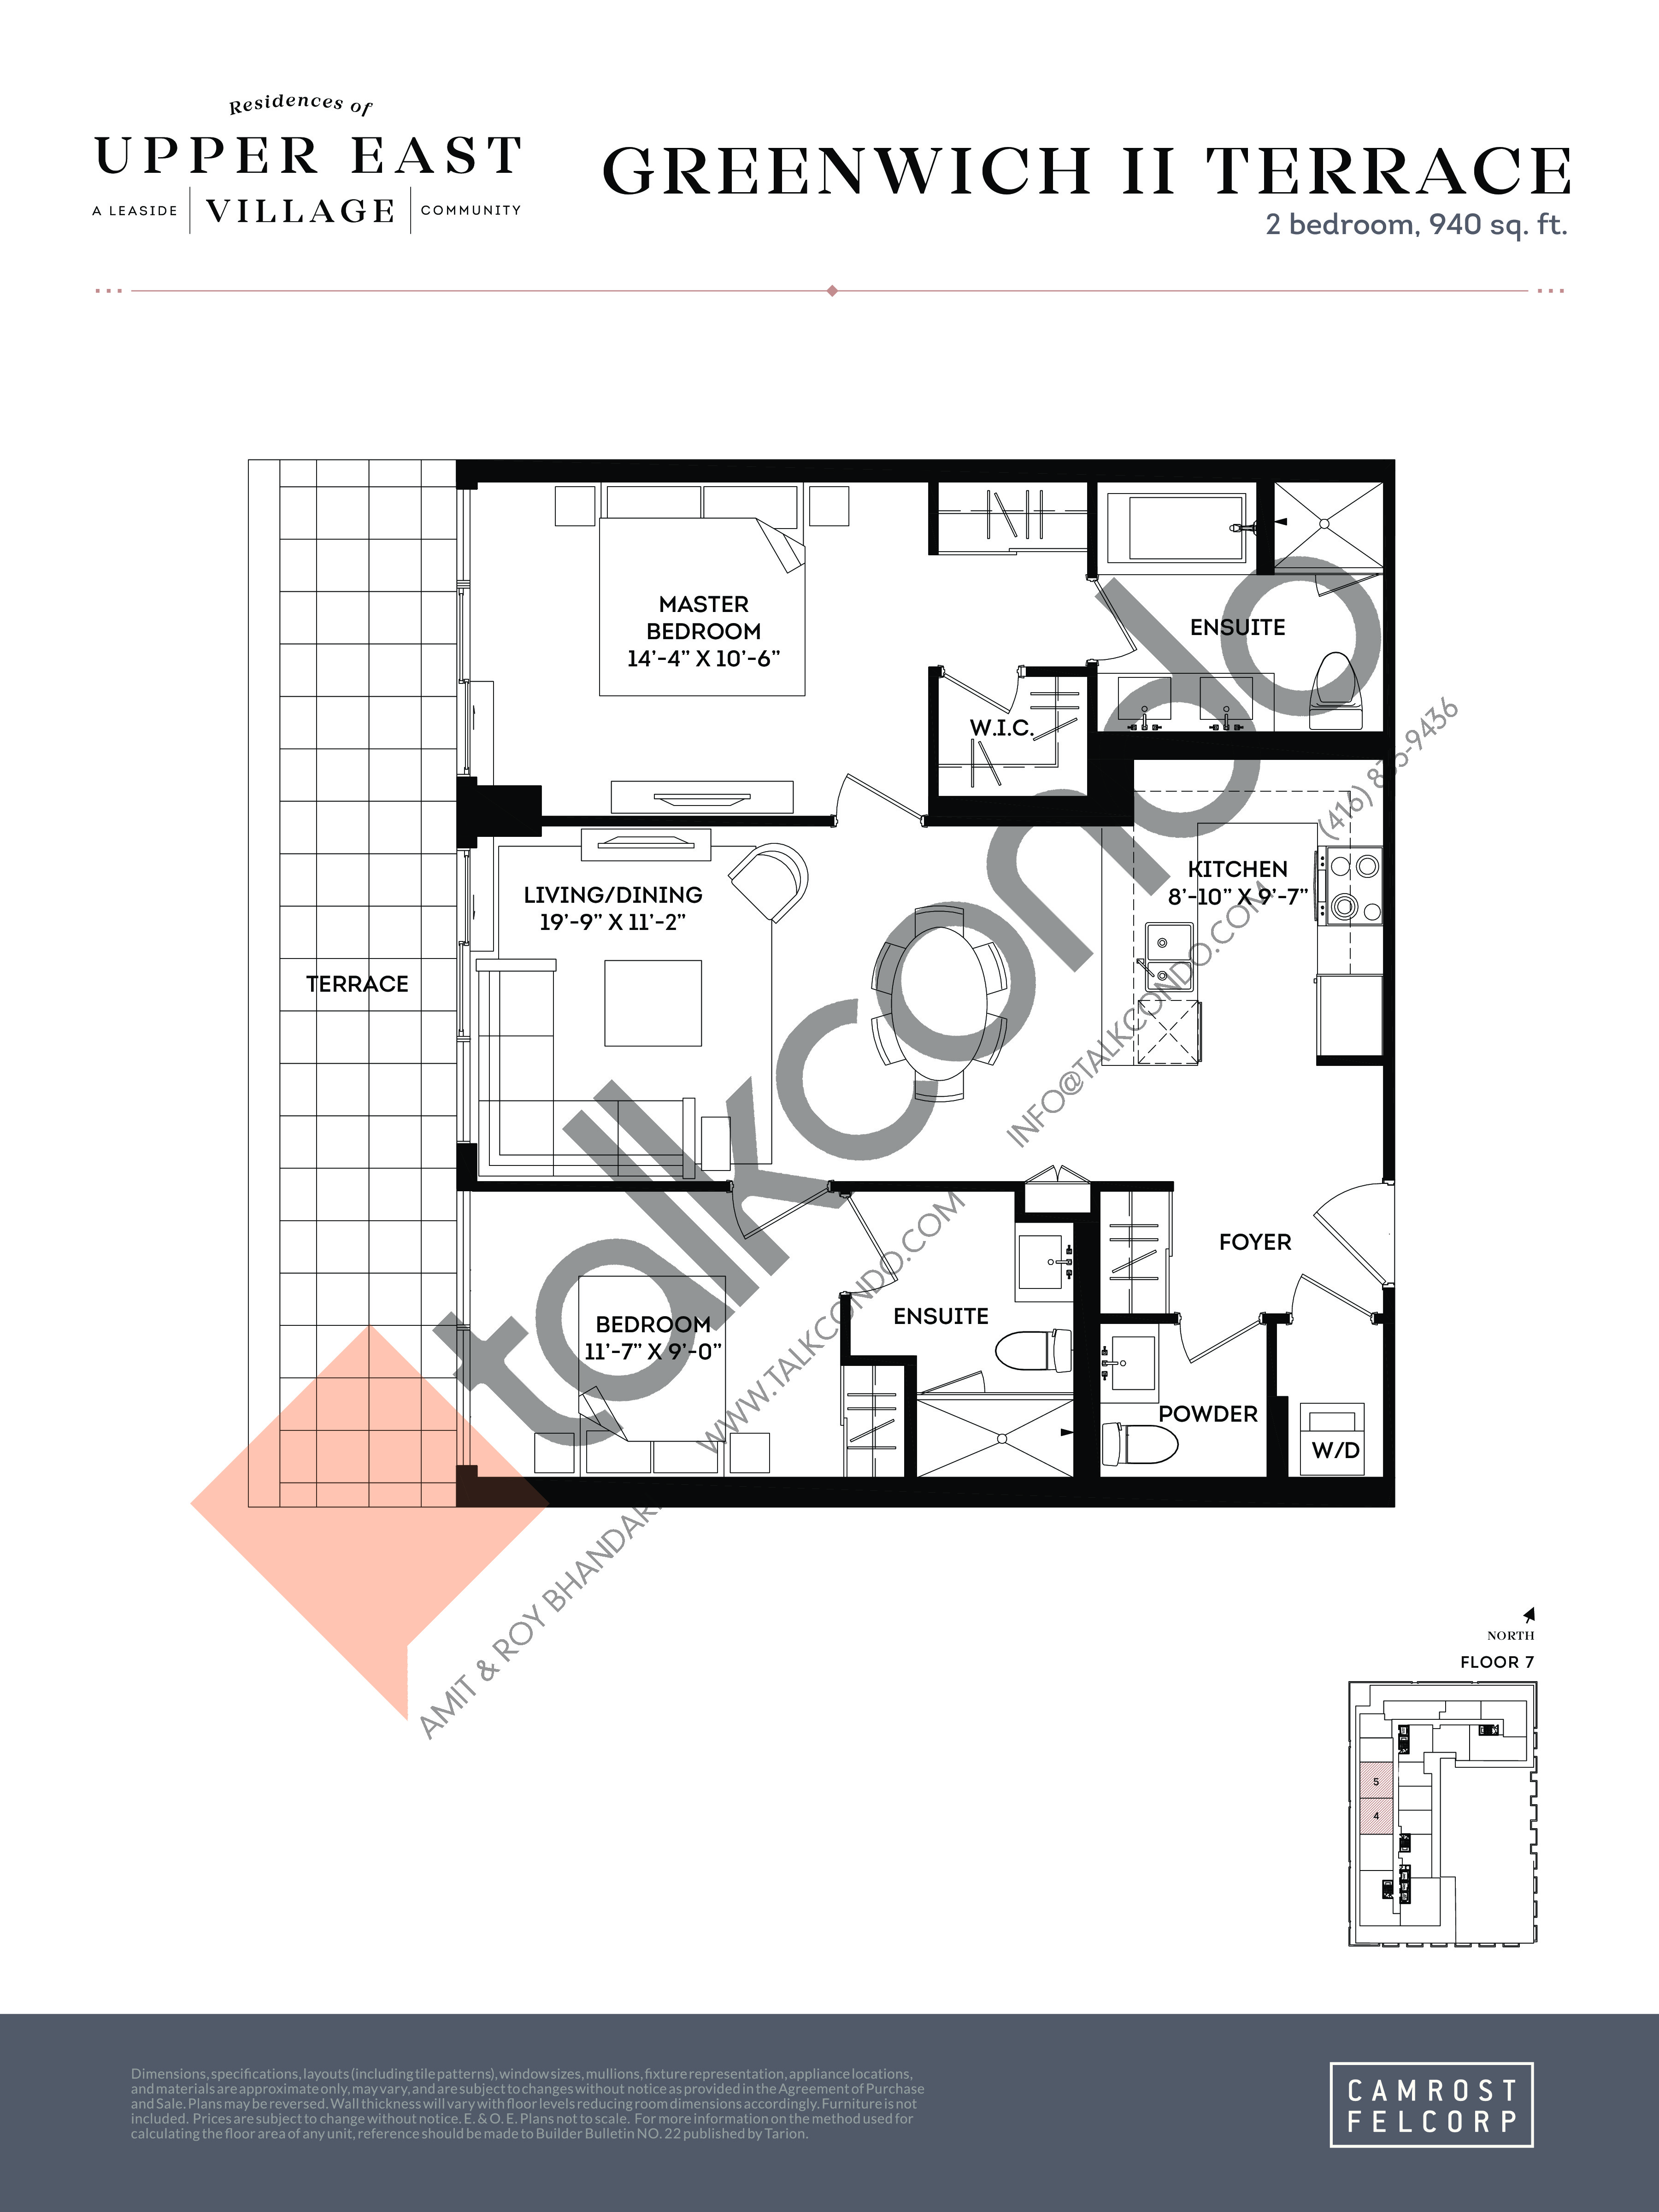 Greenwich II Terrace (Signature Collection) Floor Plan at Upper East Village Condos - 940 sq.ft